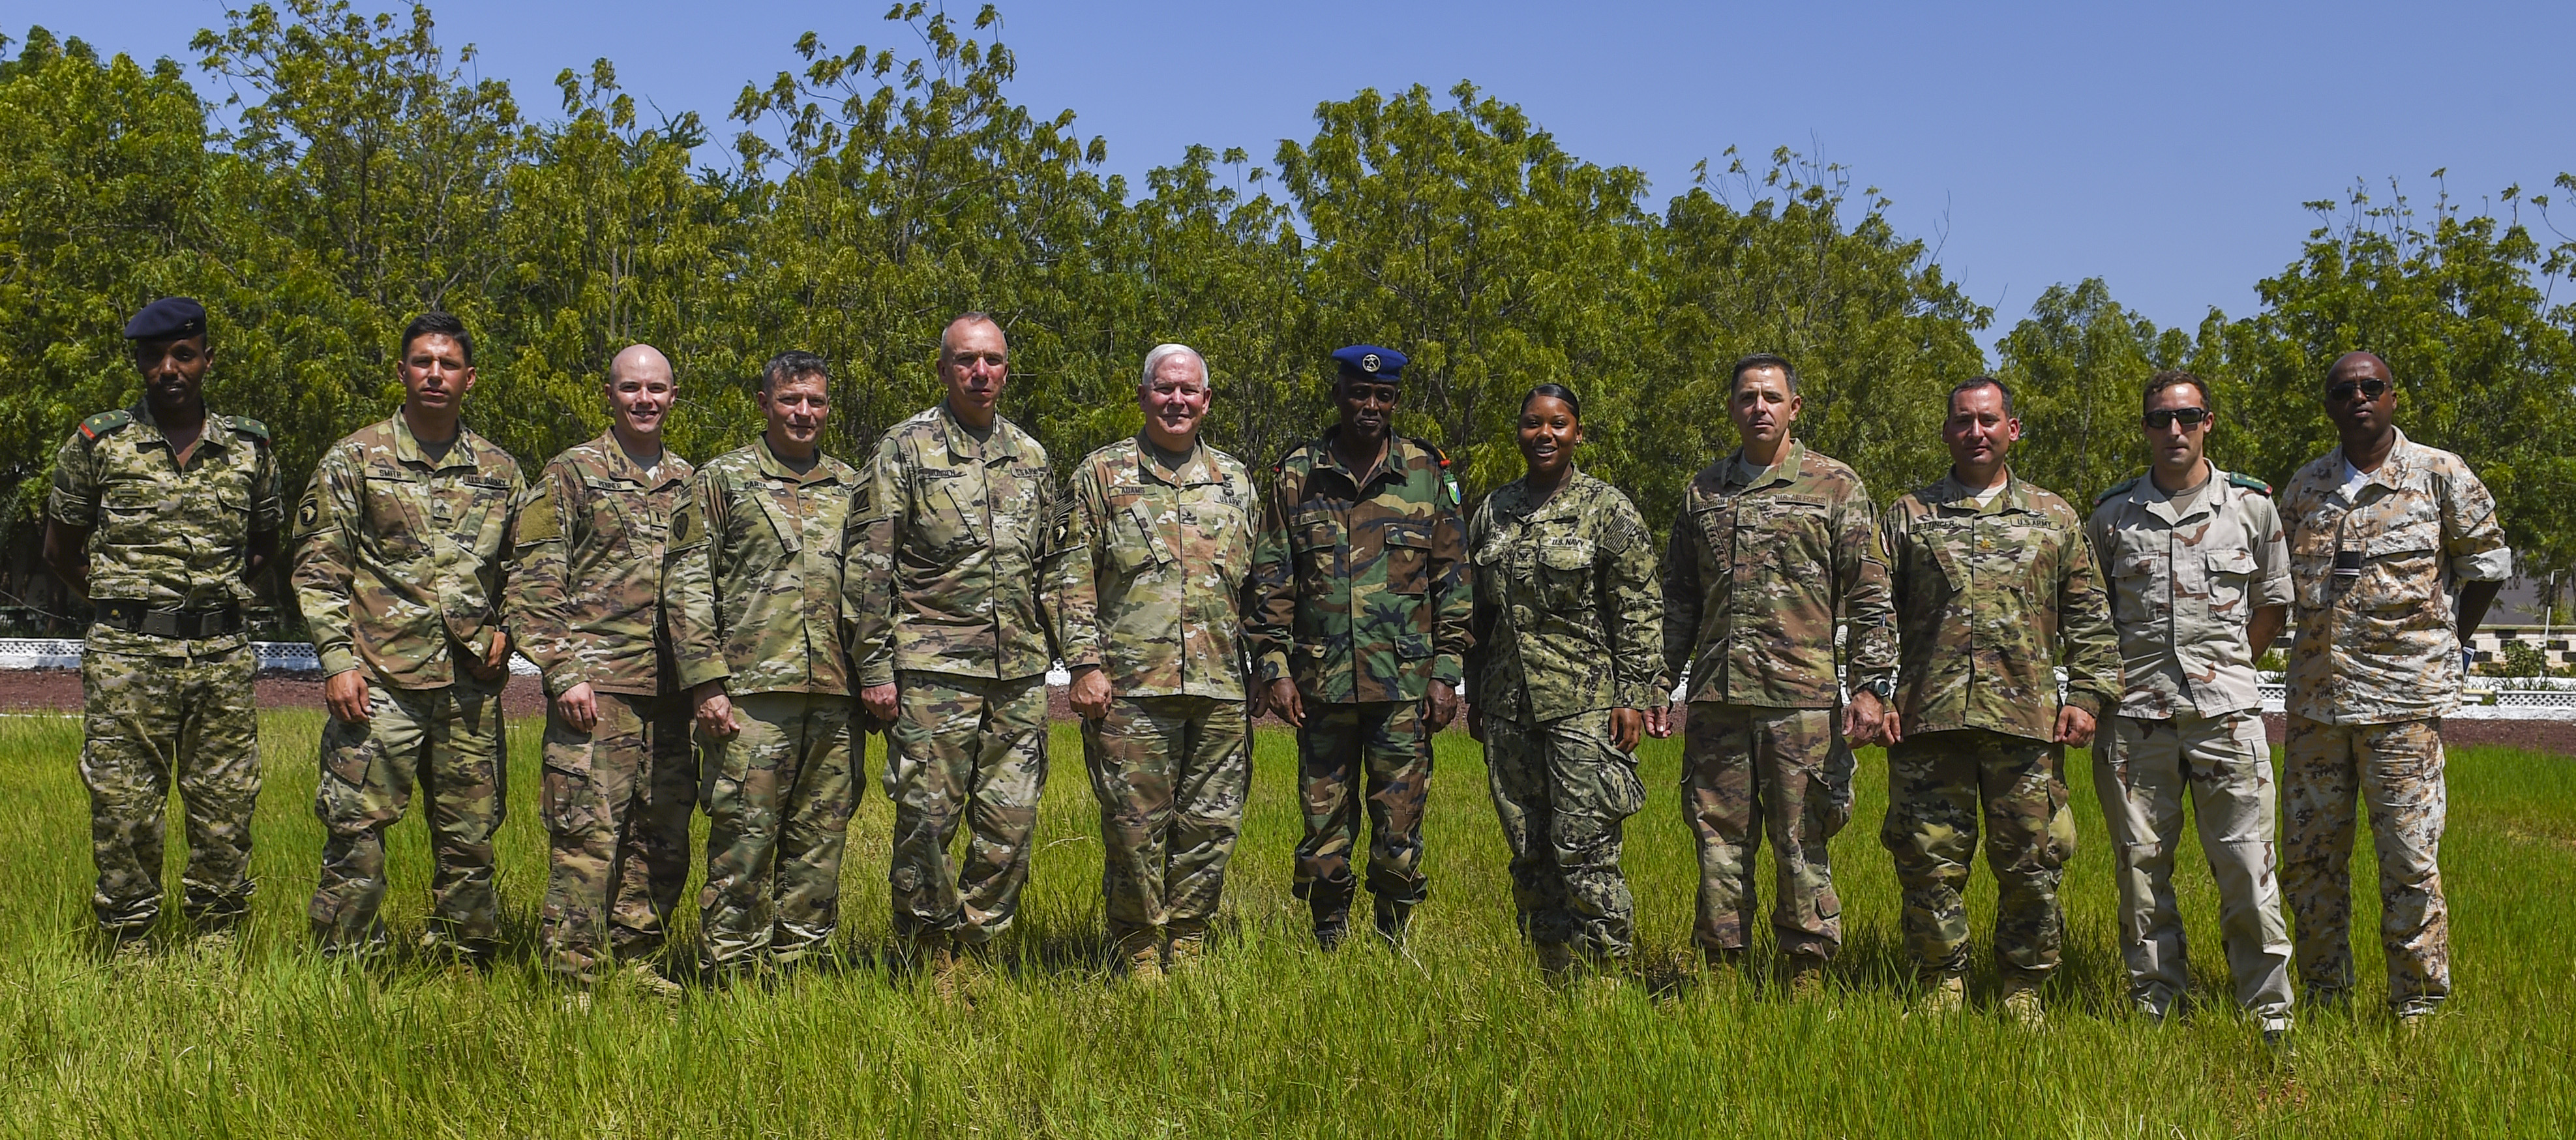 Members of the Combined Joint Task Force - Horn of Africa, Kentucky National Guard, Djibouti Armed Forces (FAD), and French army pose for a group photo during a visit to the FAD military training center at Holhol, Djibouti, Nov. 14, 2017.  The visit was part of the State Partnership Program, which matches a U.S. state's National Guard with a nation to promote enduring, mutually beneficial security relationships. (U.S. Air Force photo by Staff Sgt. Timothy Moore)